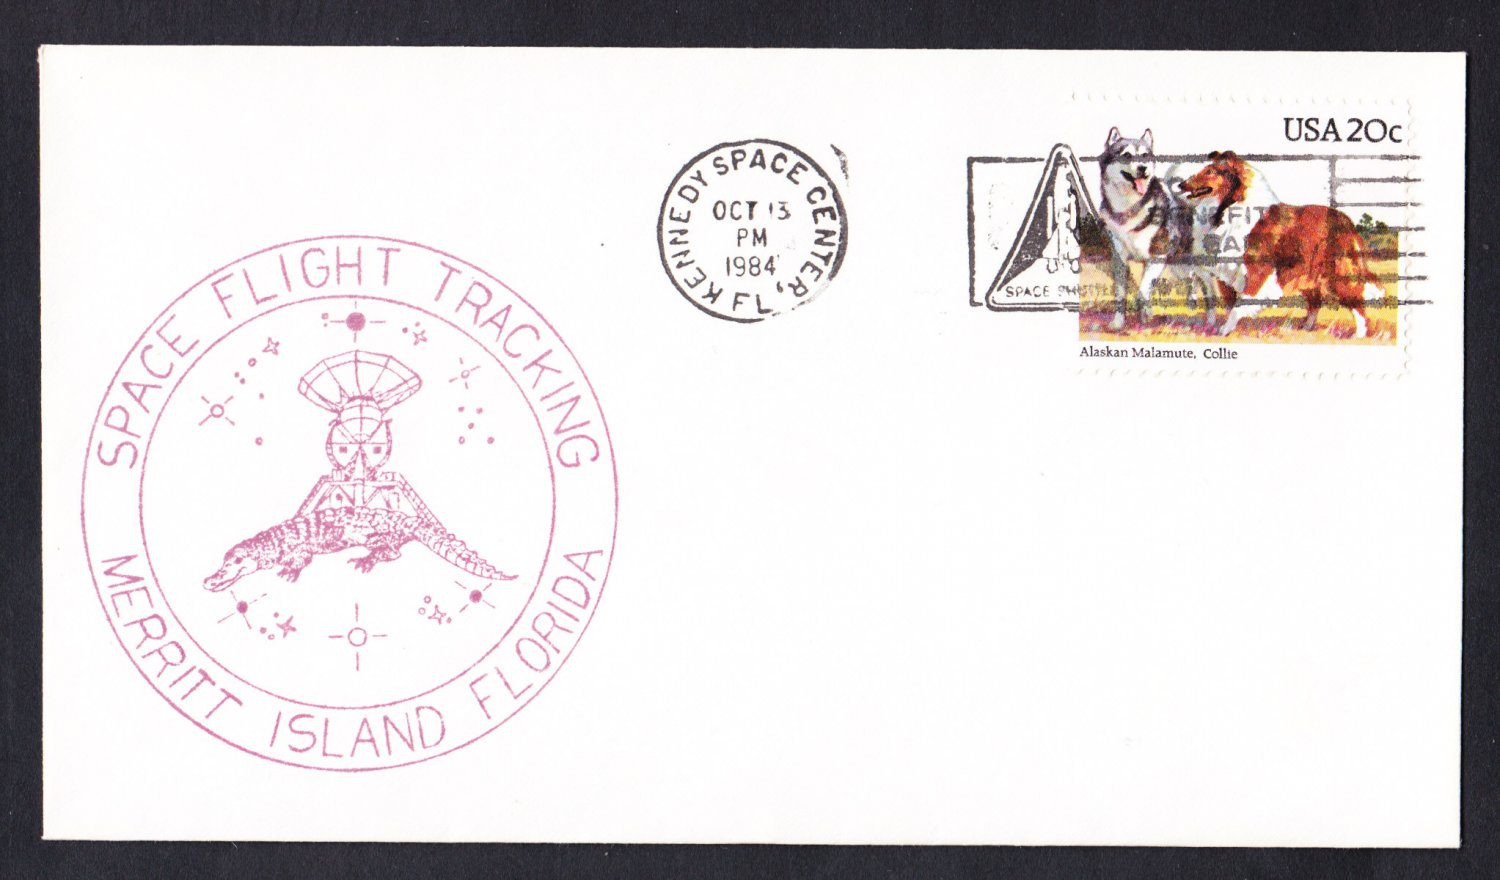 SPACE SHUTTLE CHALLENGER STS-41G Landing 1984 Space Cover